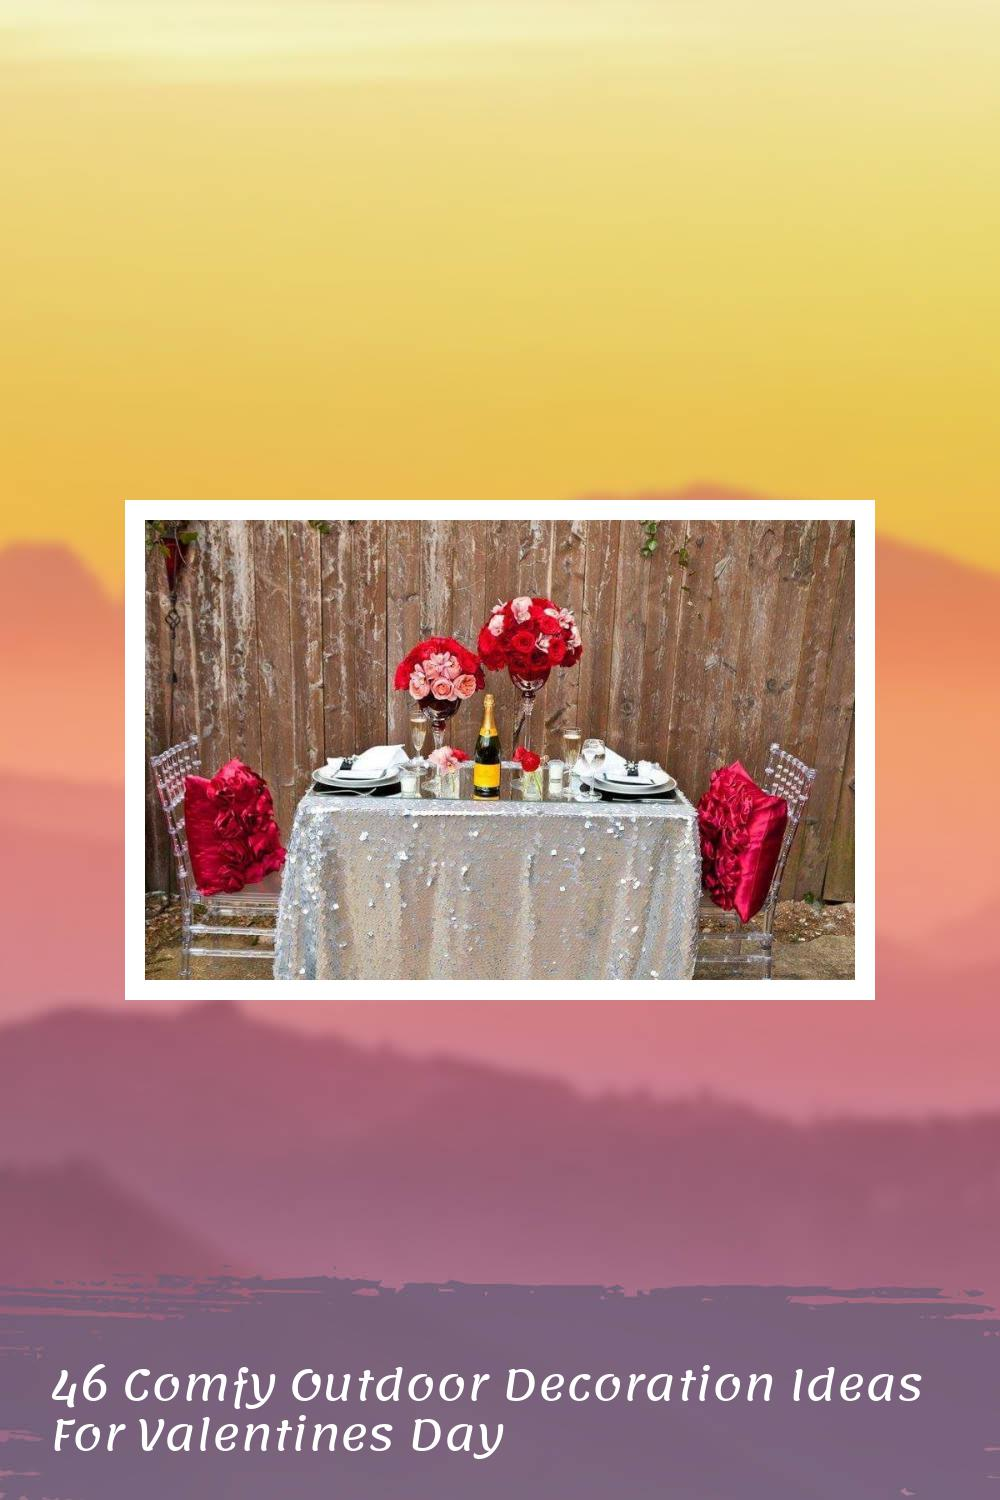 46 Comfy Outdoor Decoration Ideas For Valentines Day 2